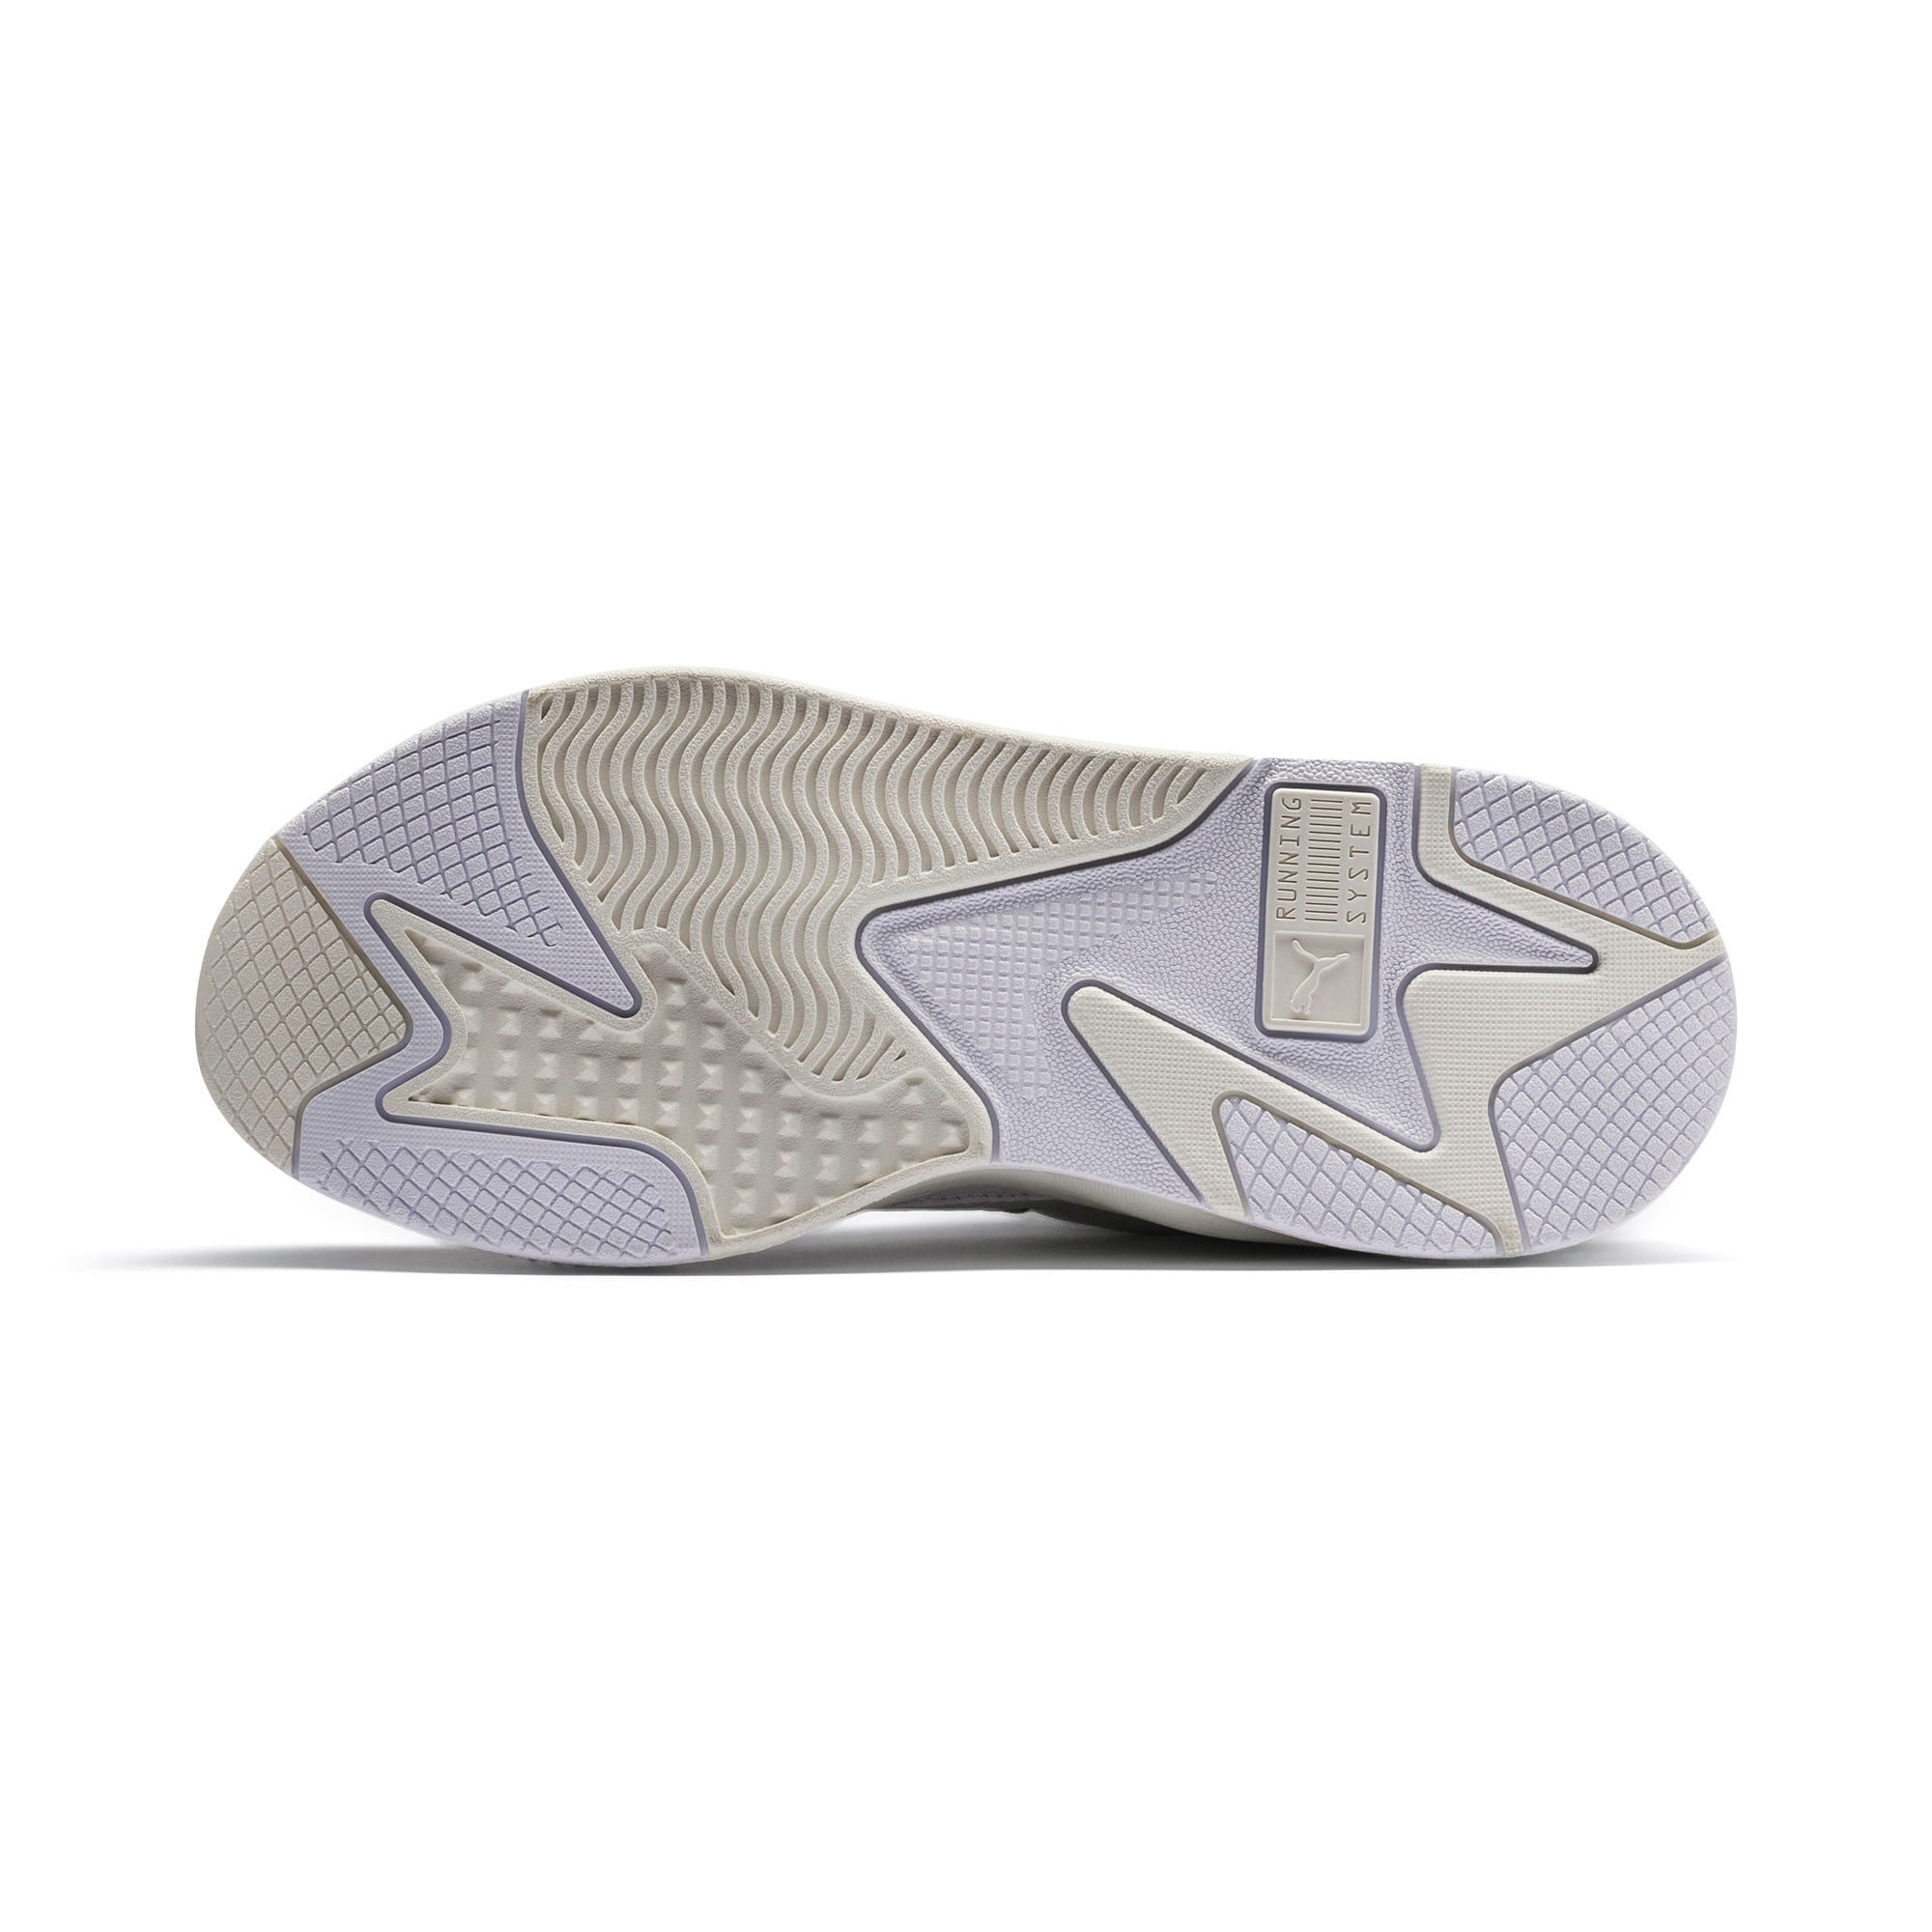 Thumbnail 5 of RS-X TROPHY, Puma White-Bronze, medium-JPN